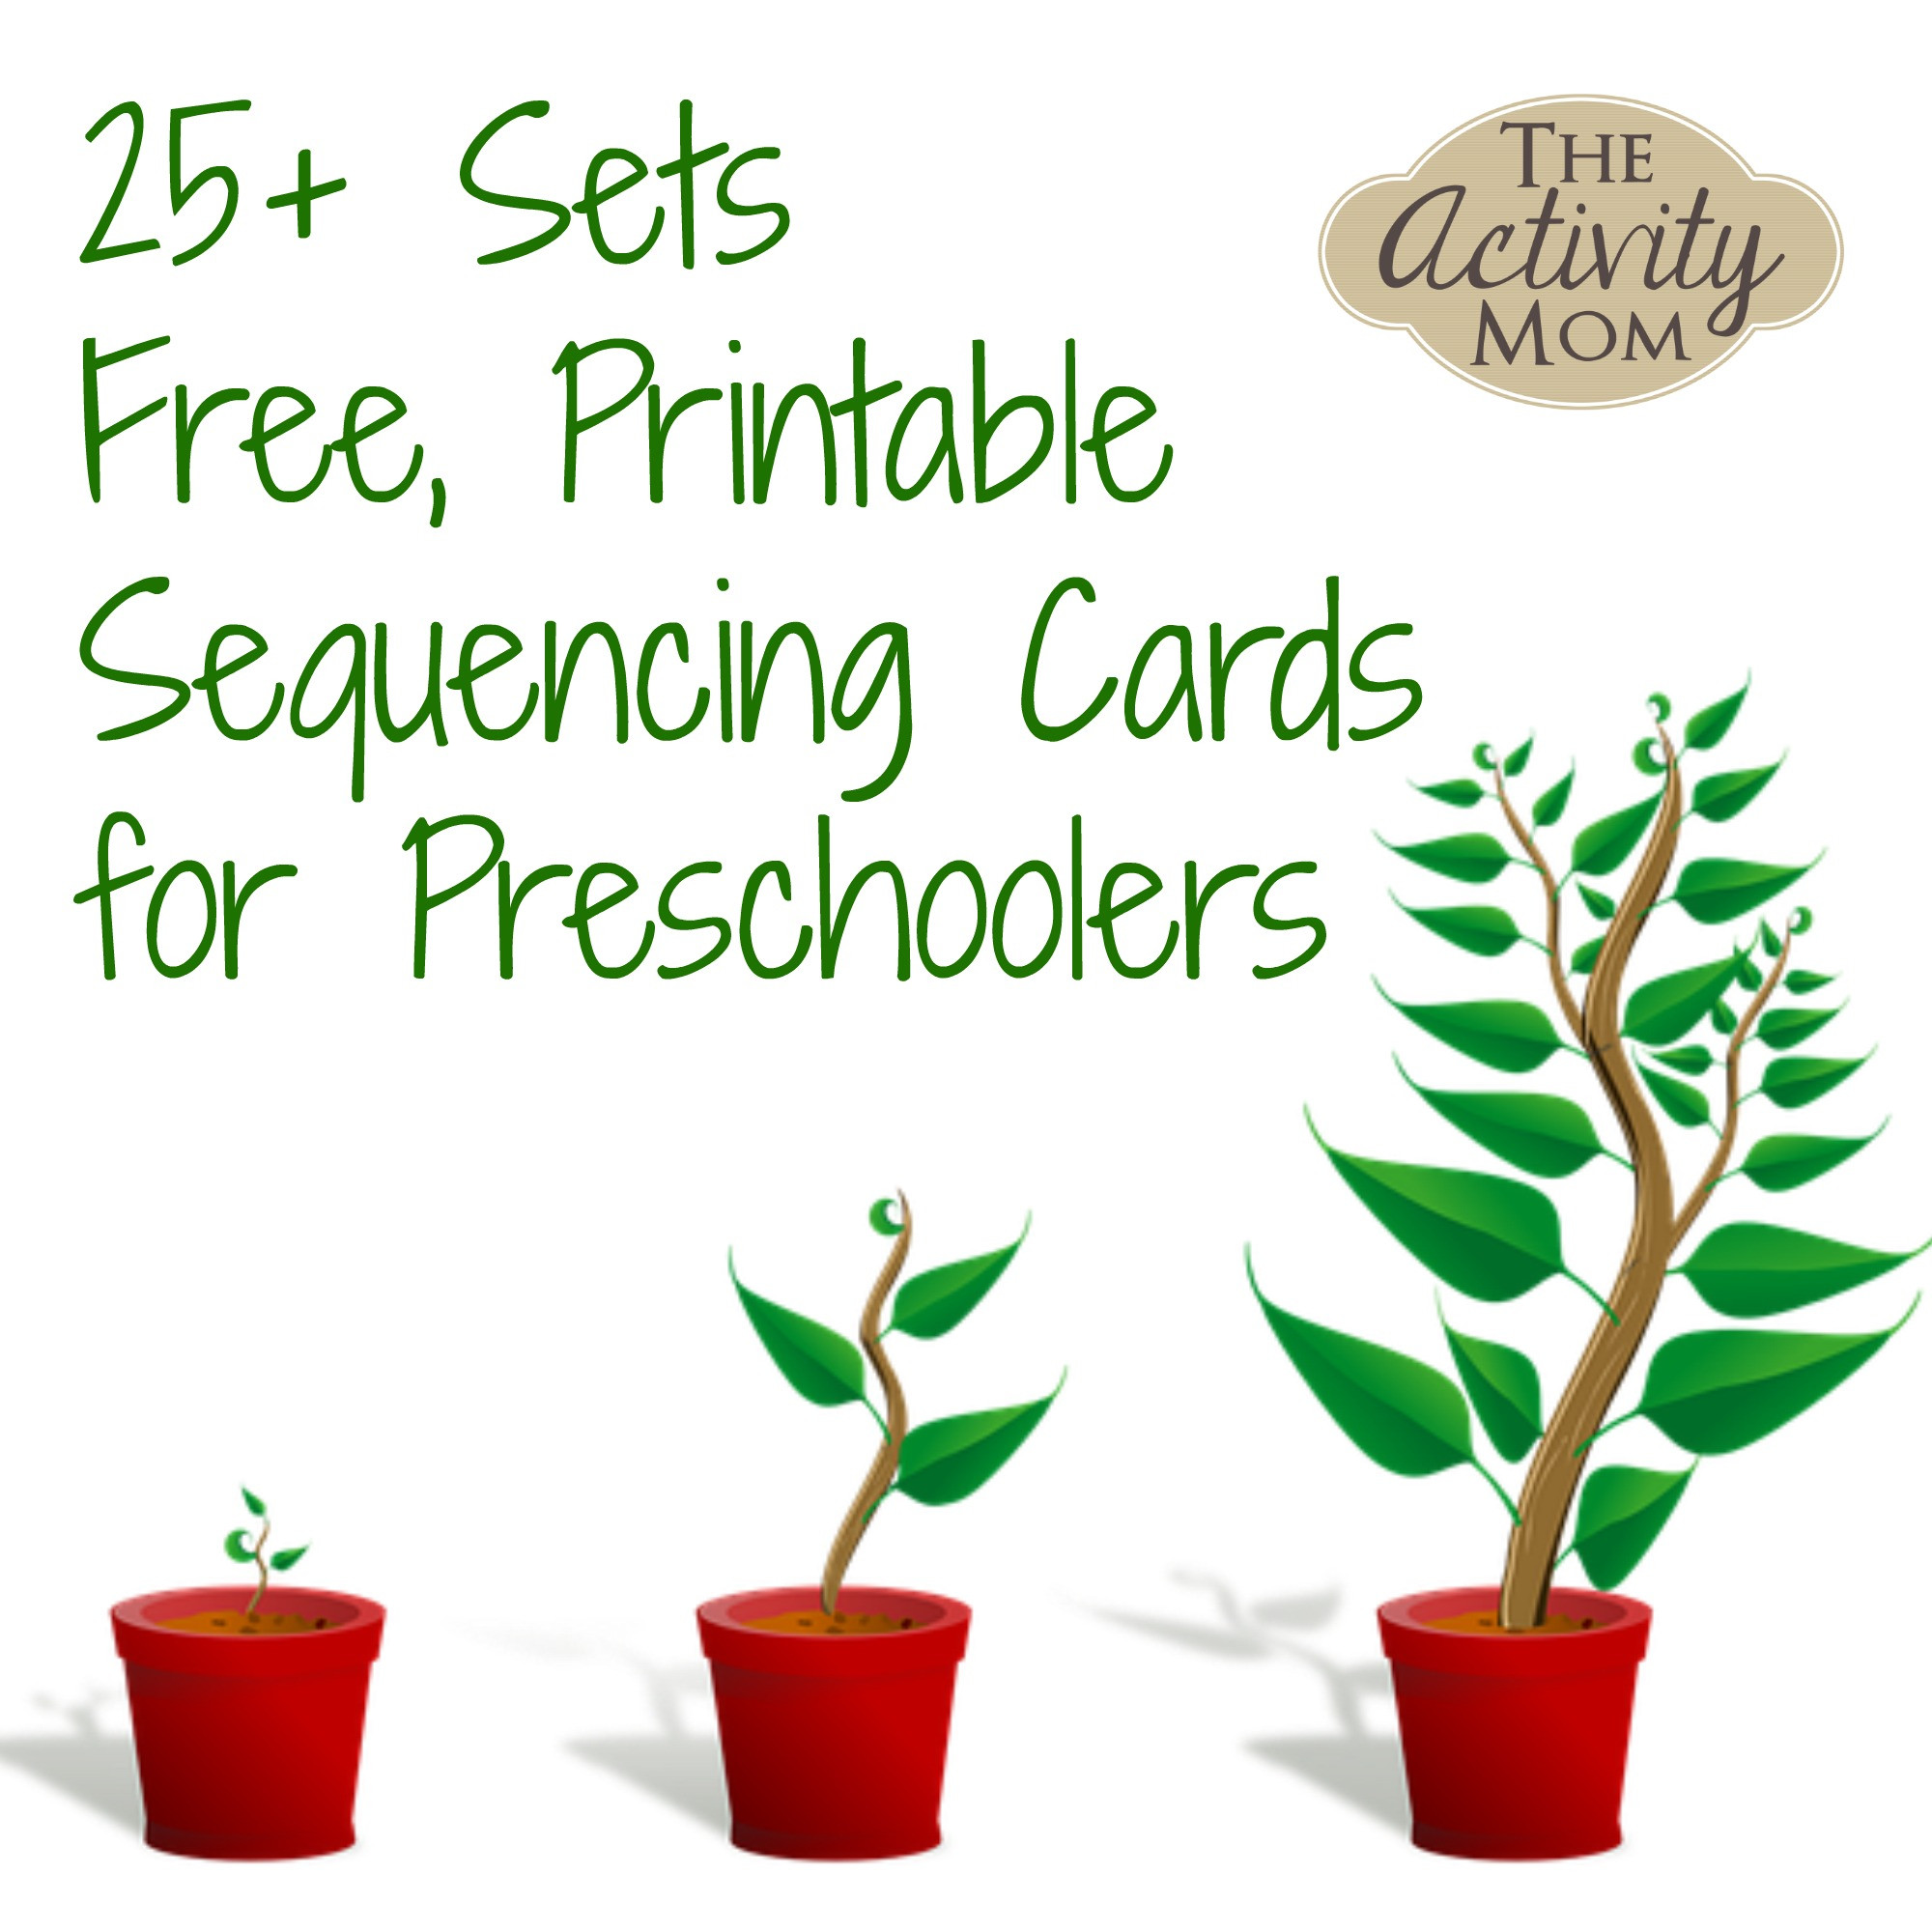 Printable Sequencing Worksheets the Activity Mom Sequencing Cards Printable the Activity Mom